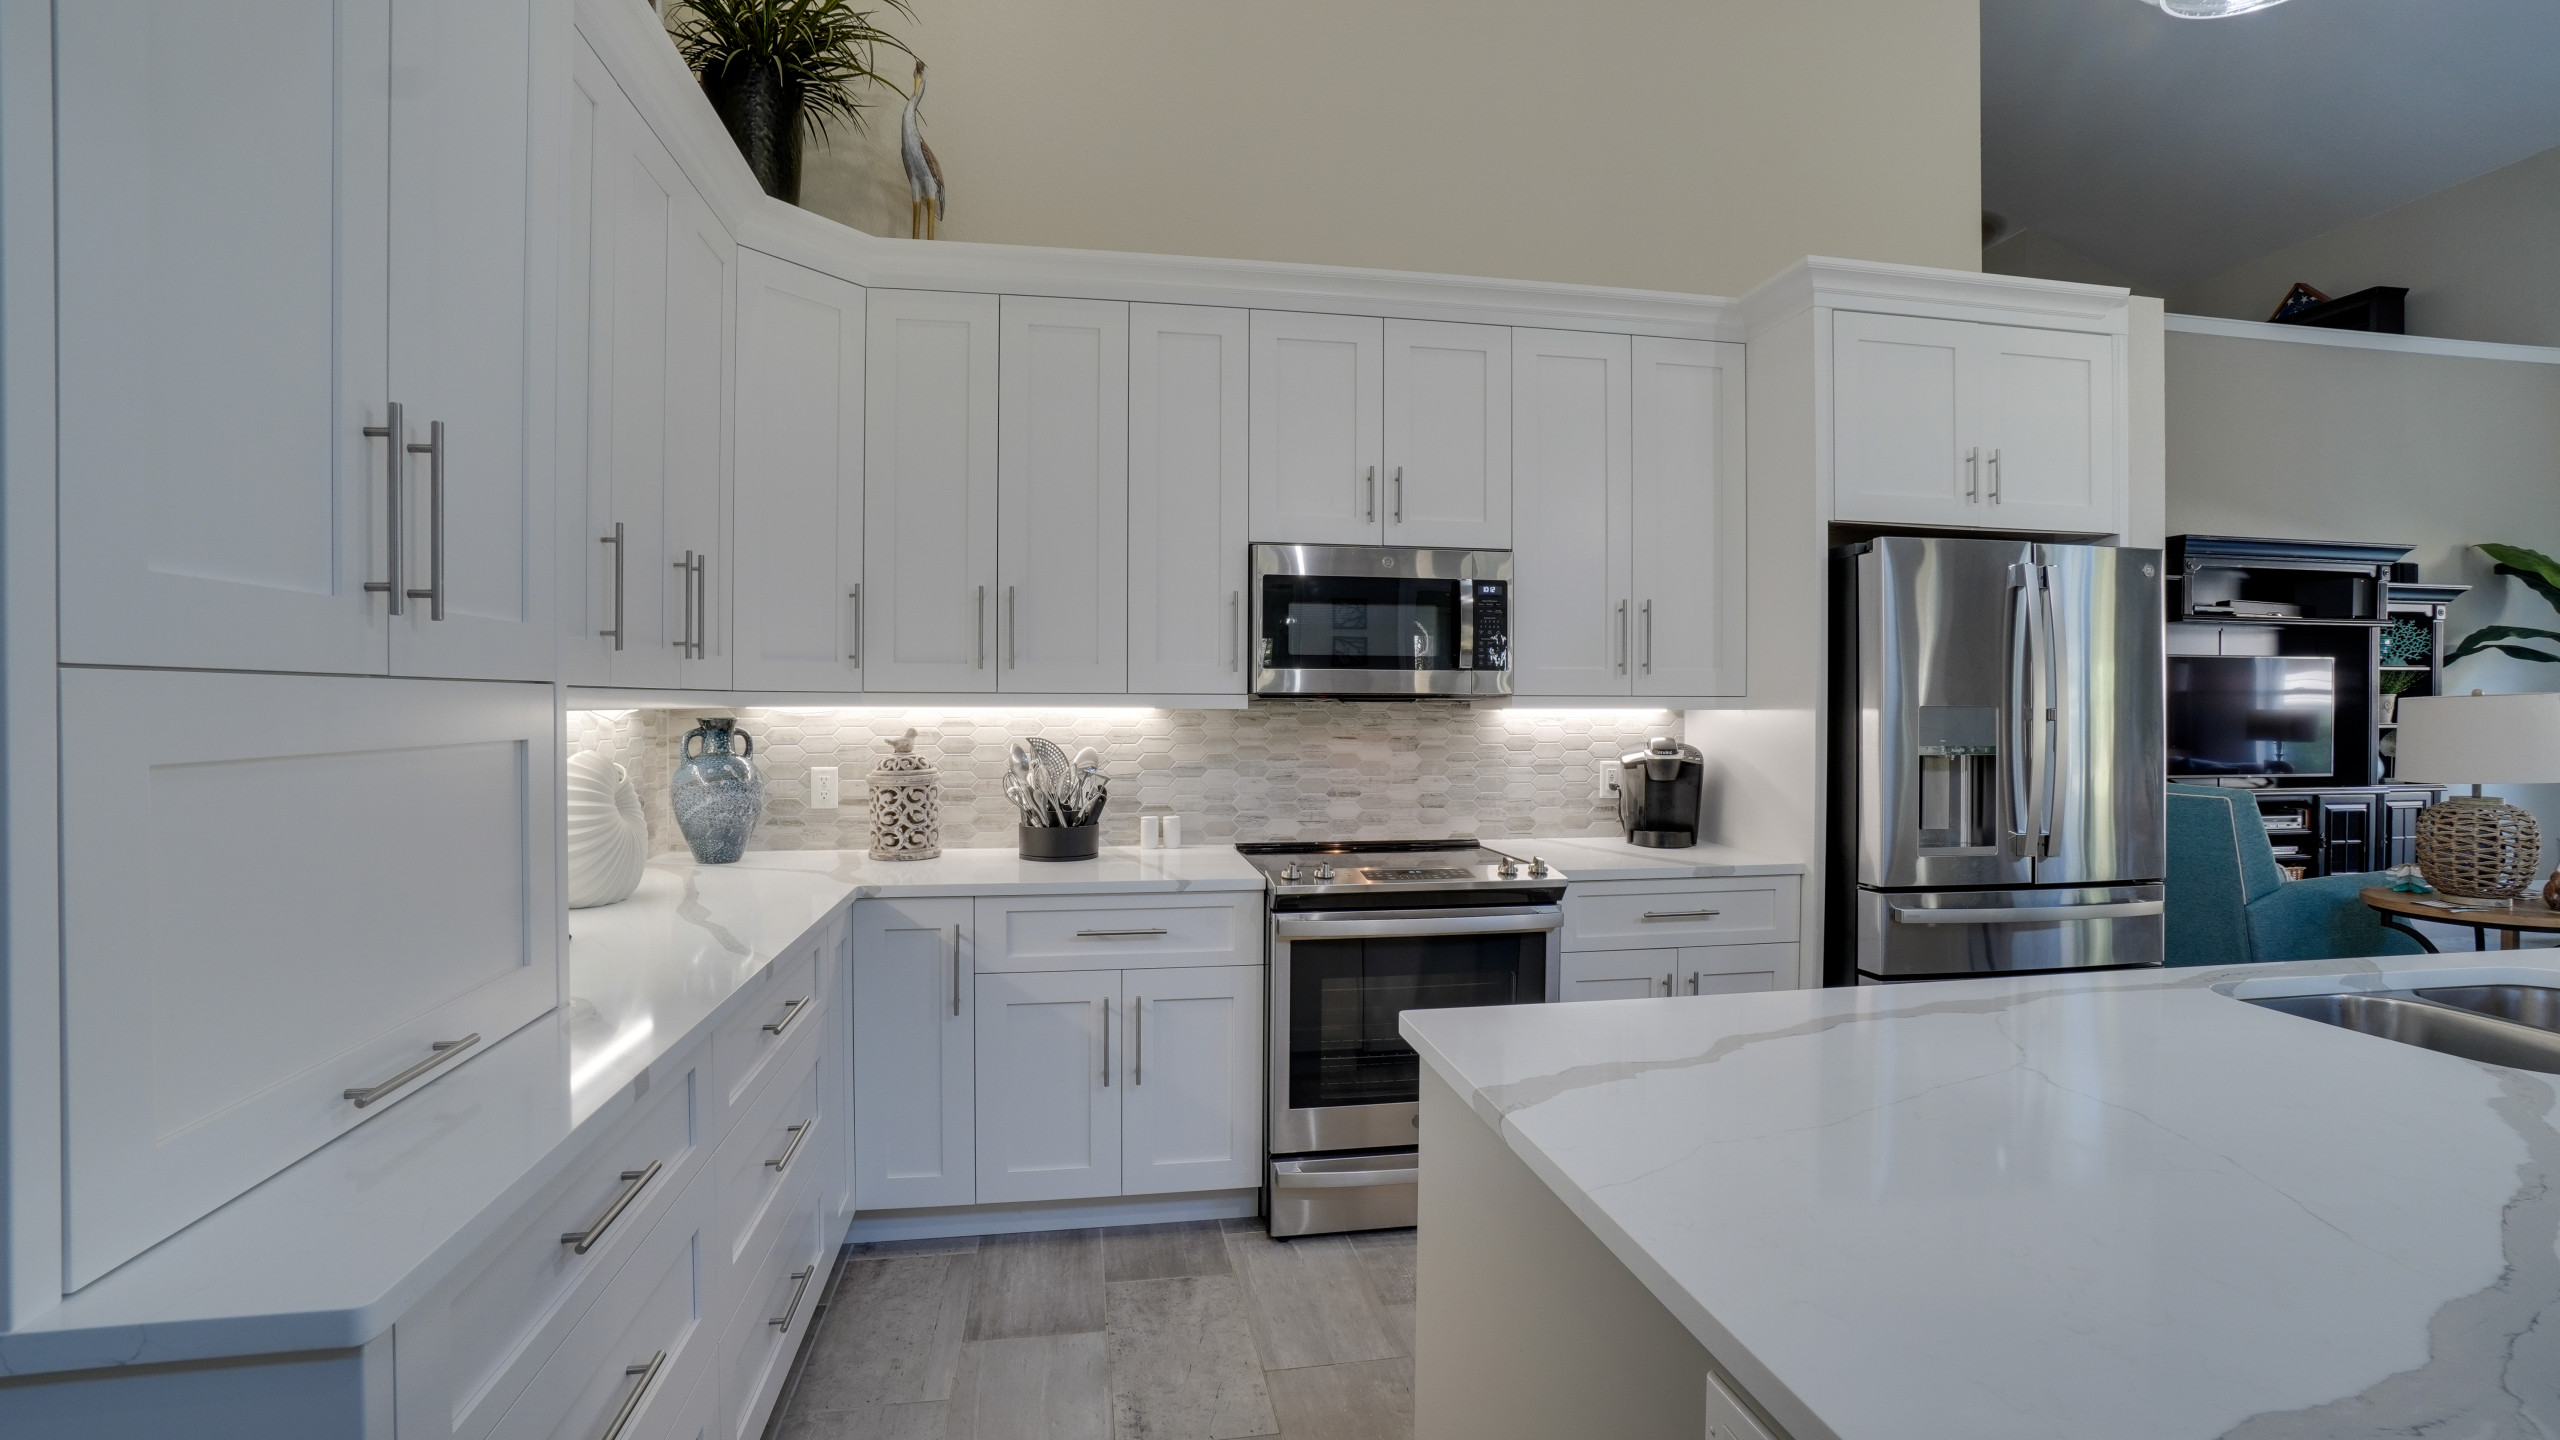 Transitional Shaker Kitchen and Bath